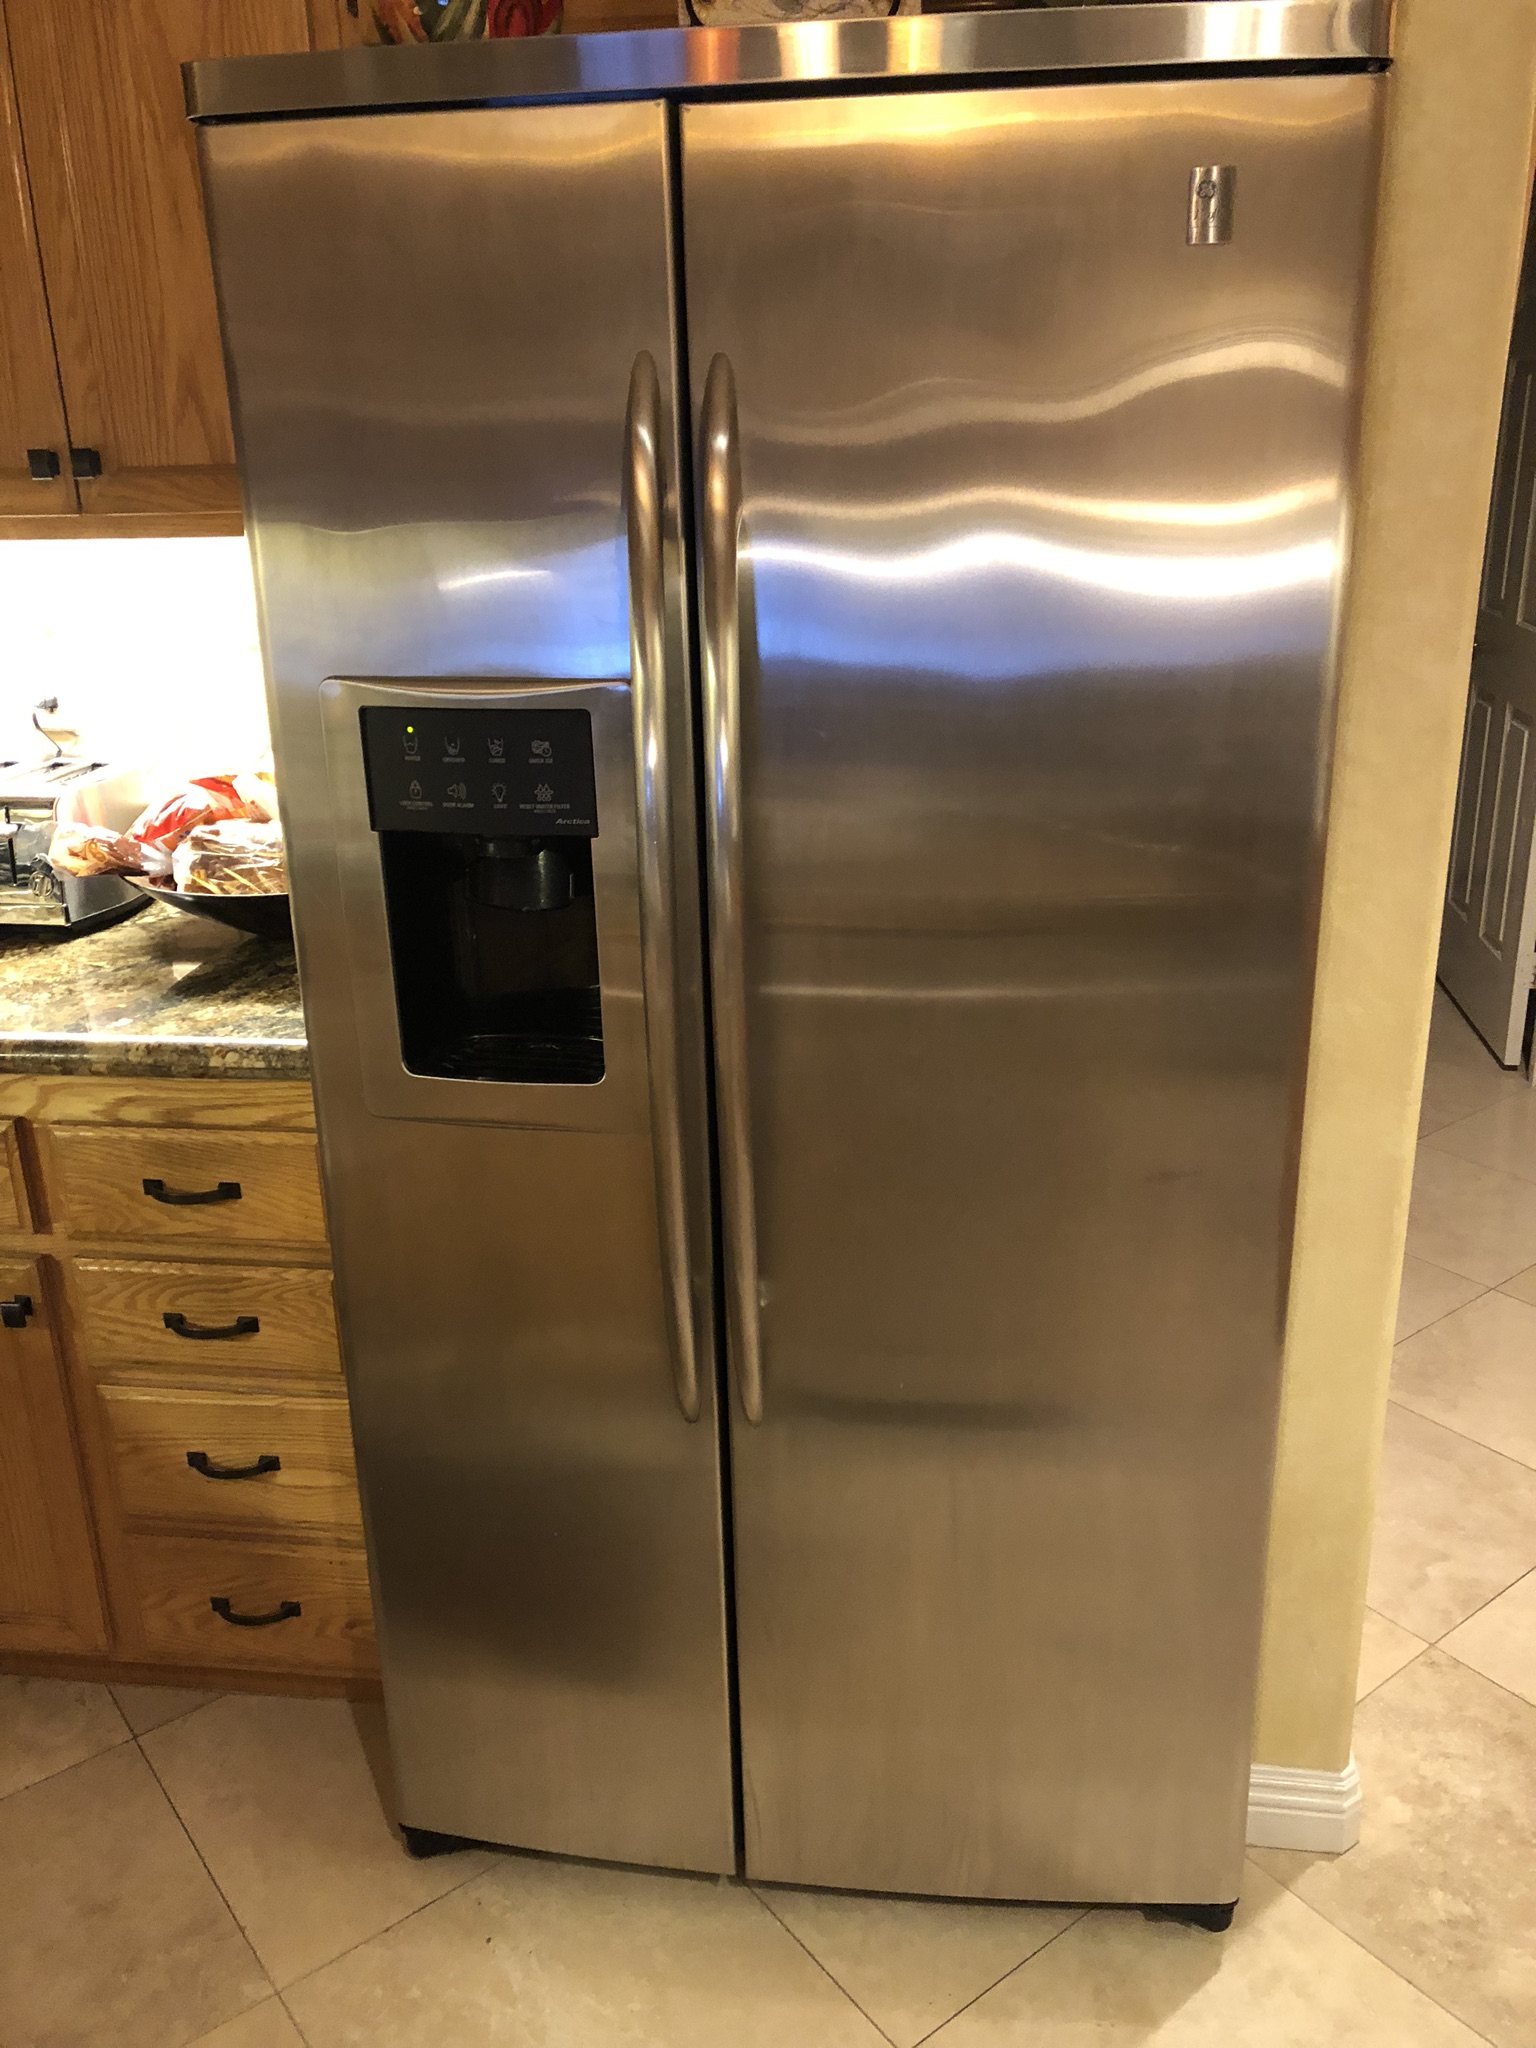 Refrigerator GE Profile 26 cu ft. Side by side